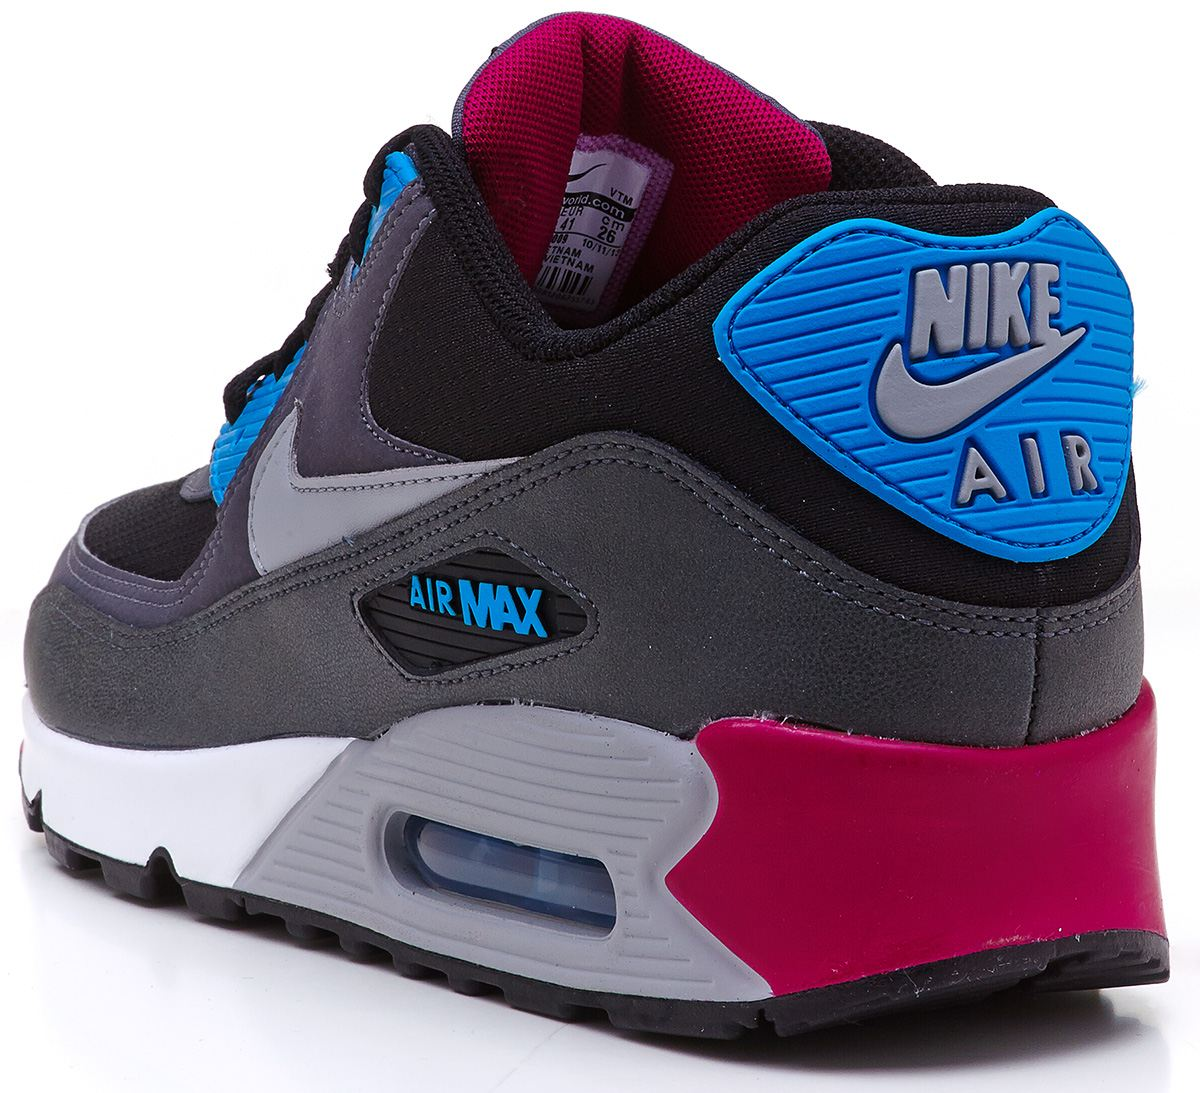 Awesome Sale On Nikes Shoes Prices All Rights Reserved Guides Huh Dole Grunted